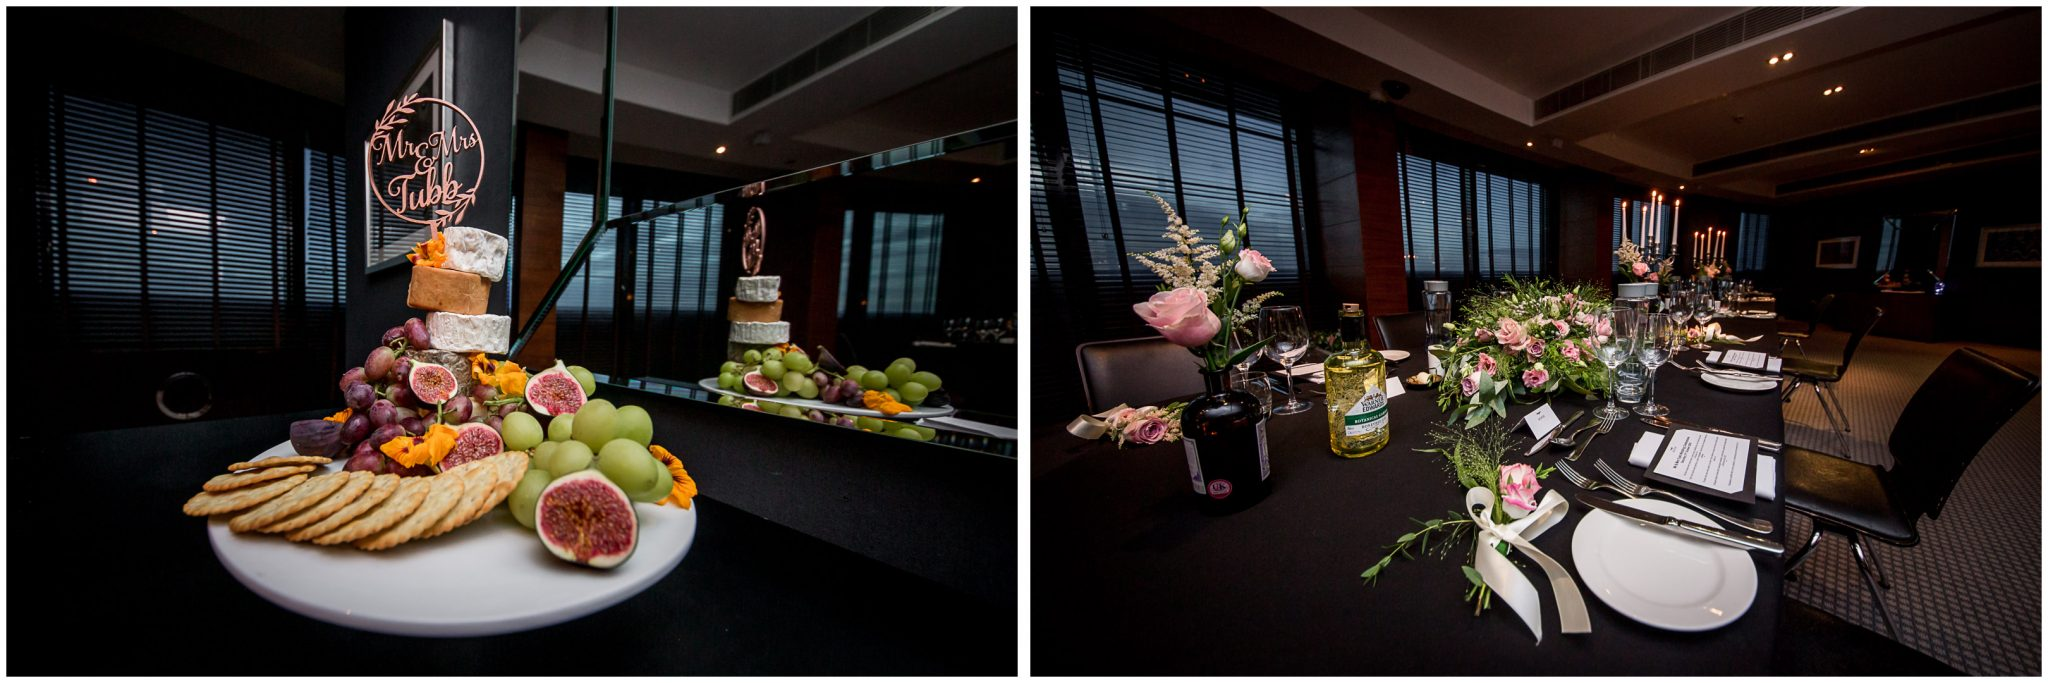 Wedding cake of cheese and table decoration details